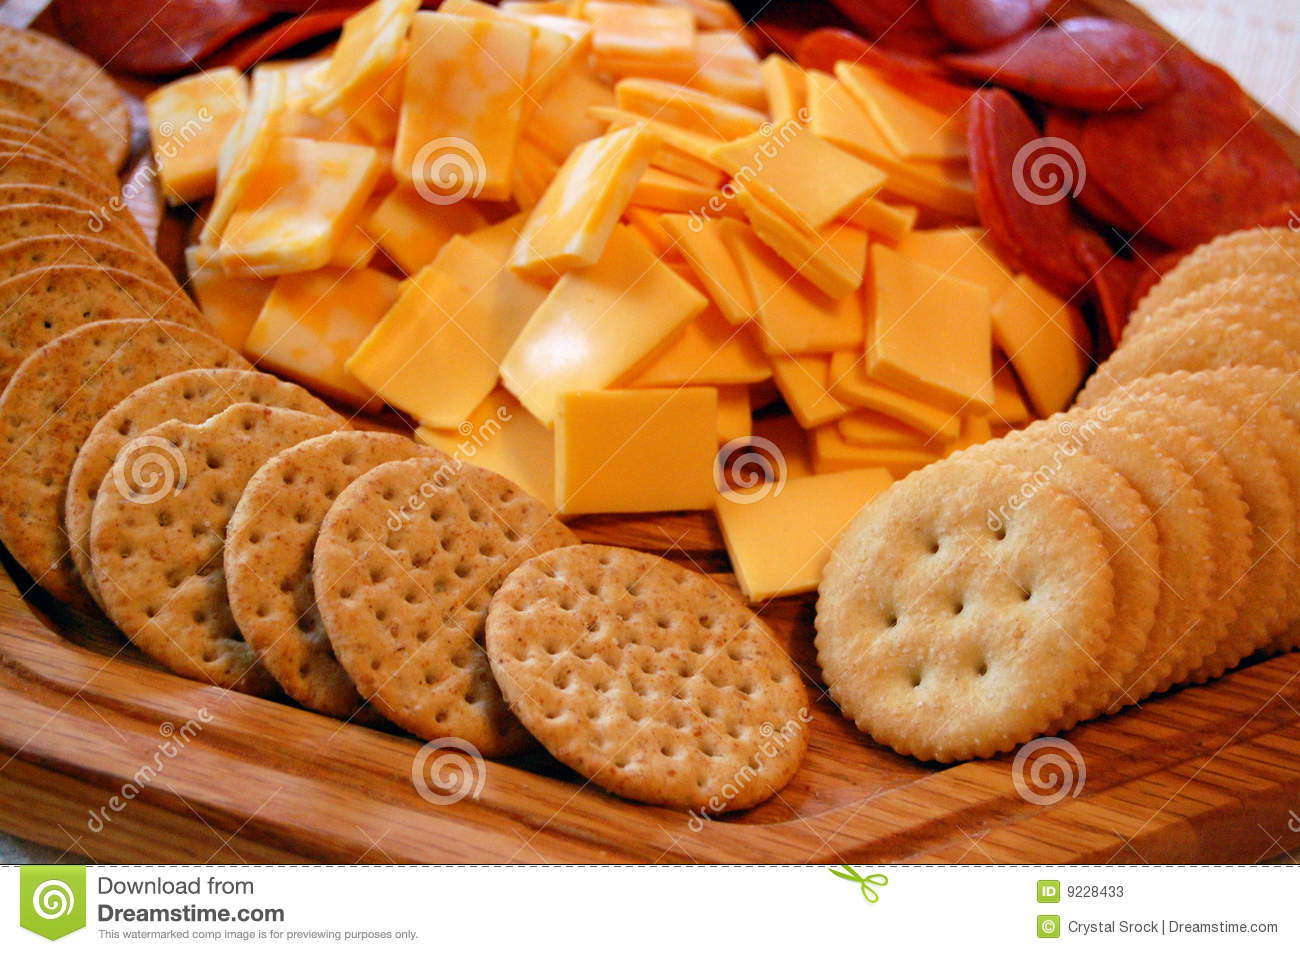 Cheese And Crackers Stock Image. Image Of Assortment